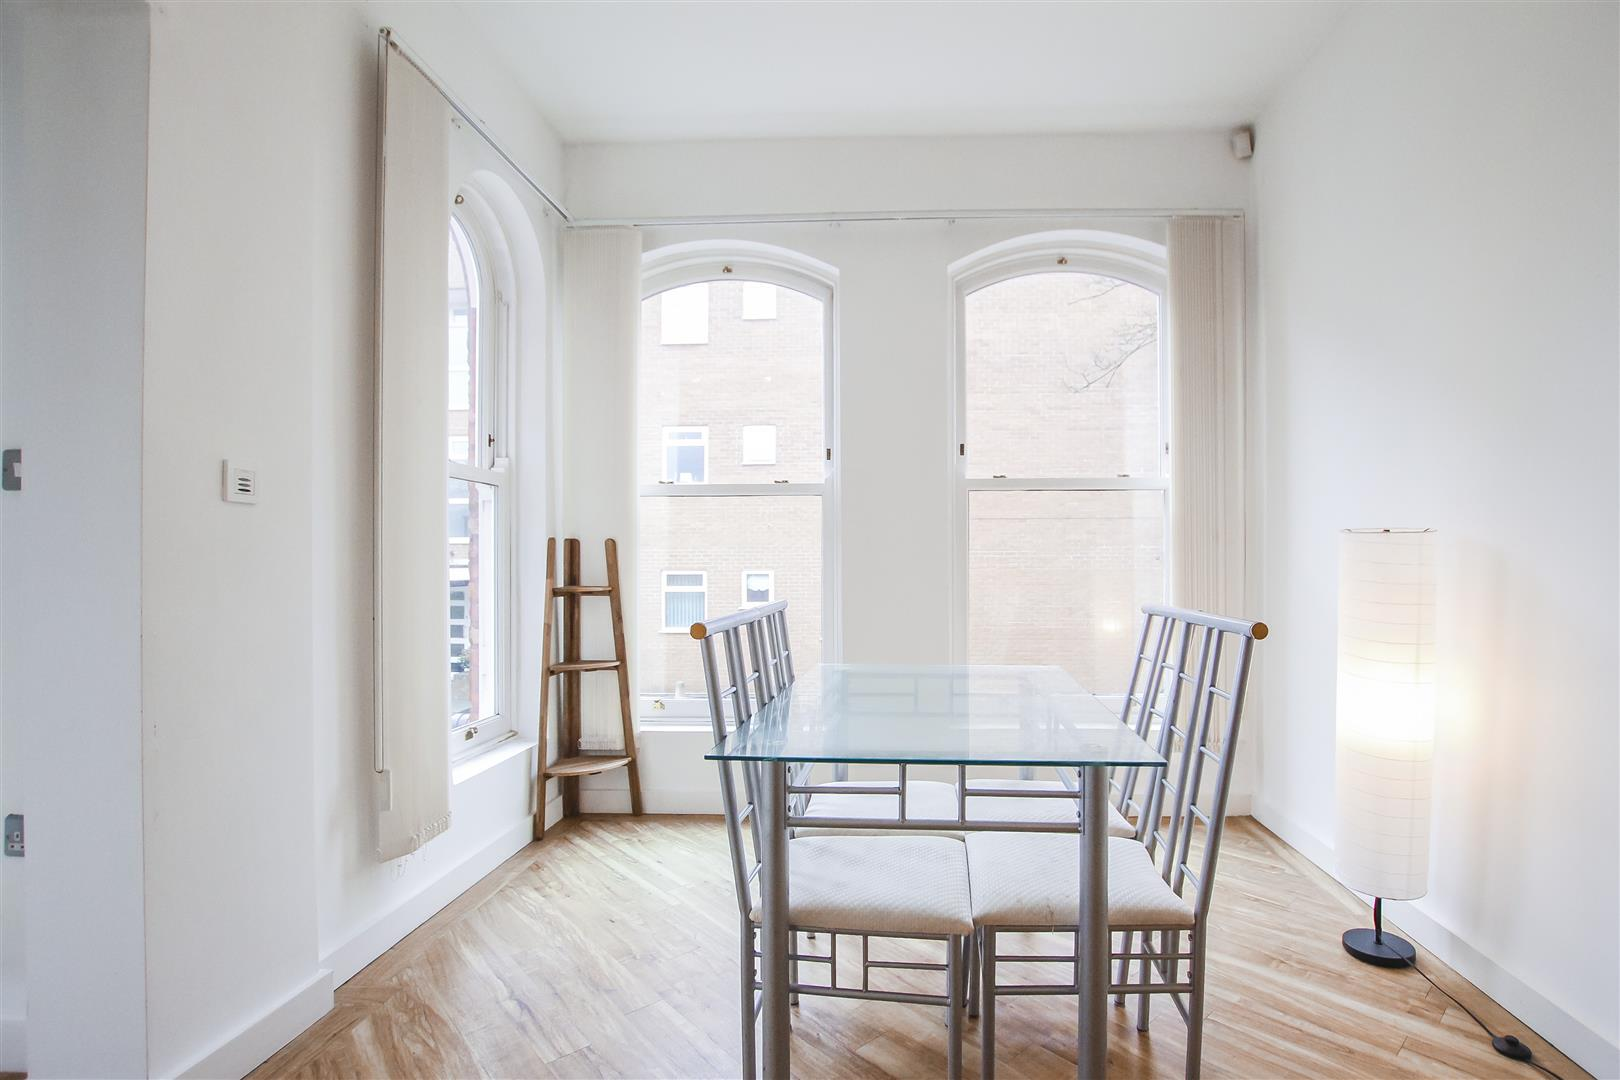 2 Bedroom Apartment For Sale - Dining Room